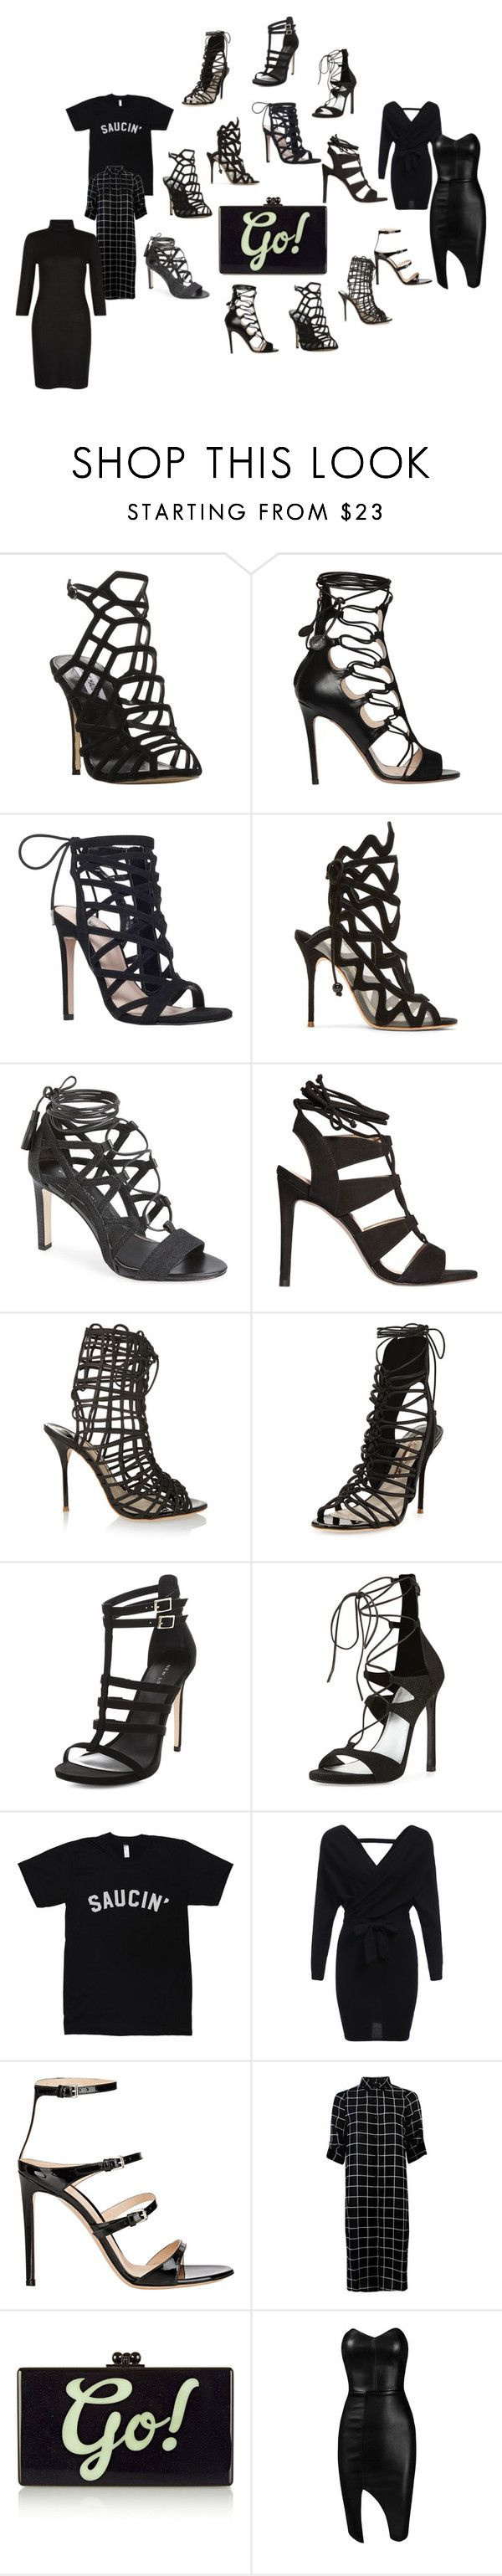 """on rotation"" by thispersonsays ❤ liked on Polyvore featuring Steve Madden, Etro, Carvela, Sophia Webster, Elie Tahari, New Look, Stuart Weitzman, Gianvito Rossi, Edie Parker and Posh Girl"